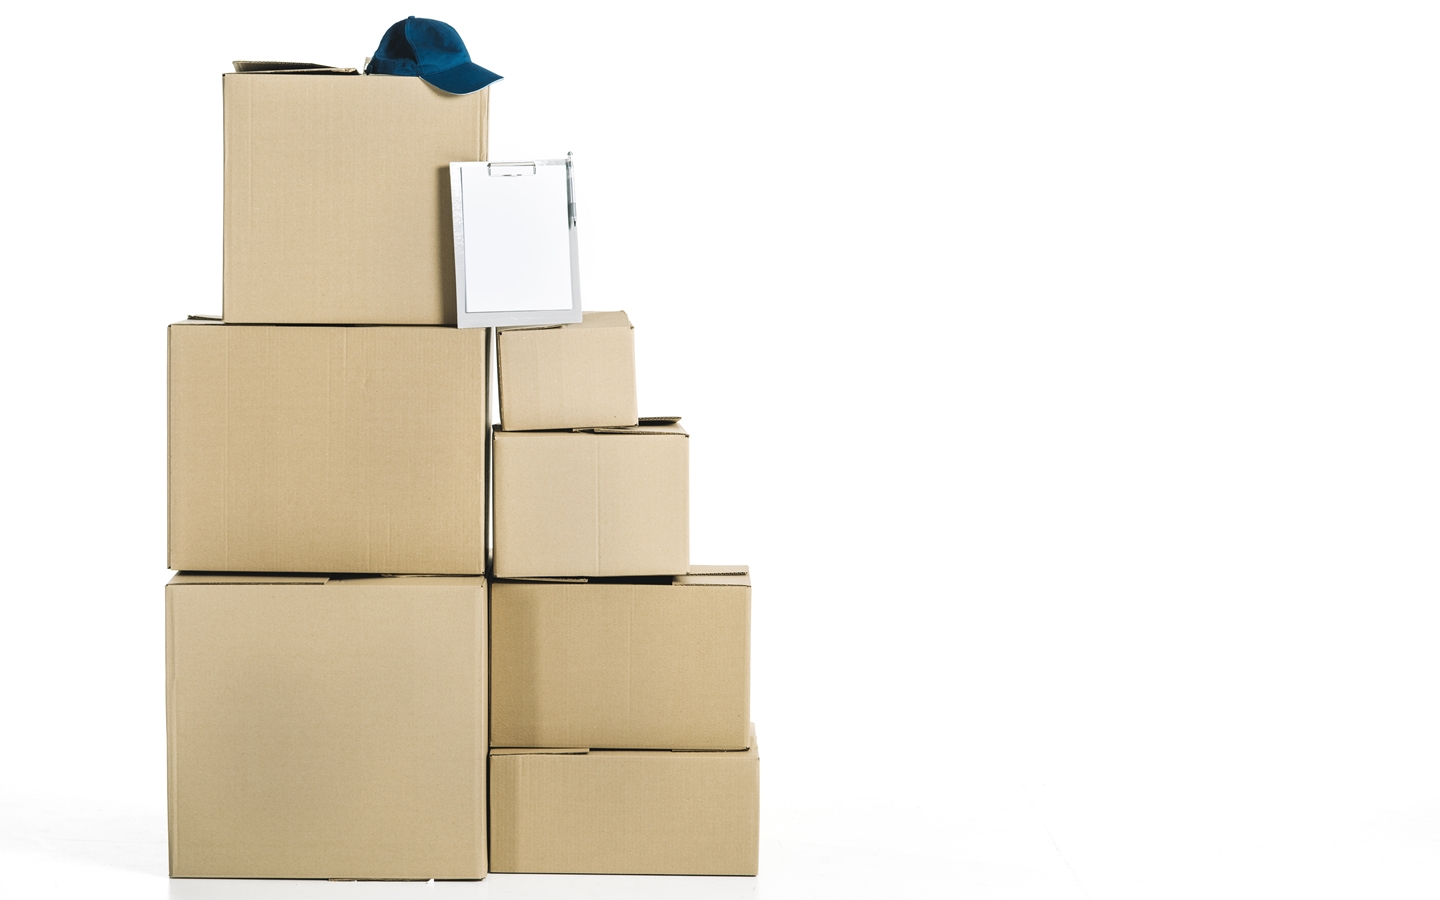 A good apartment moving tips is keeping the valuable items seprate